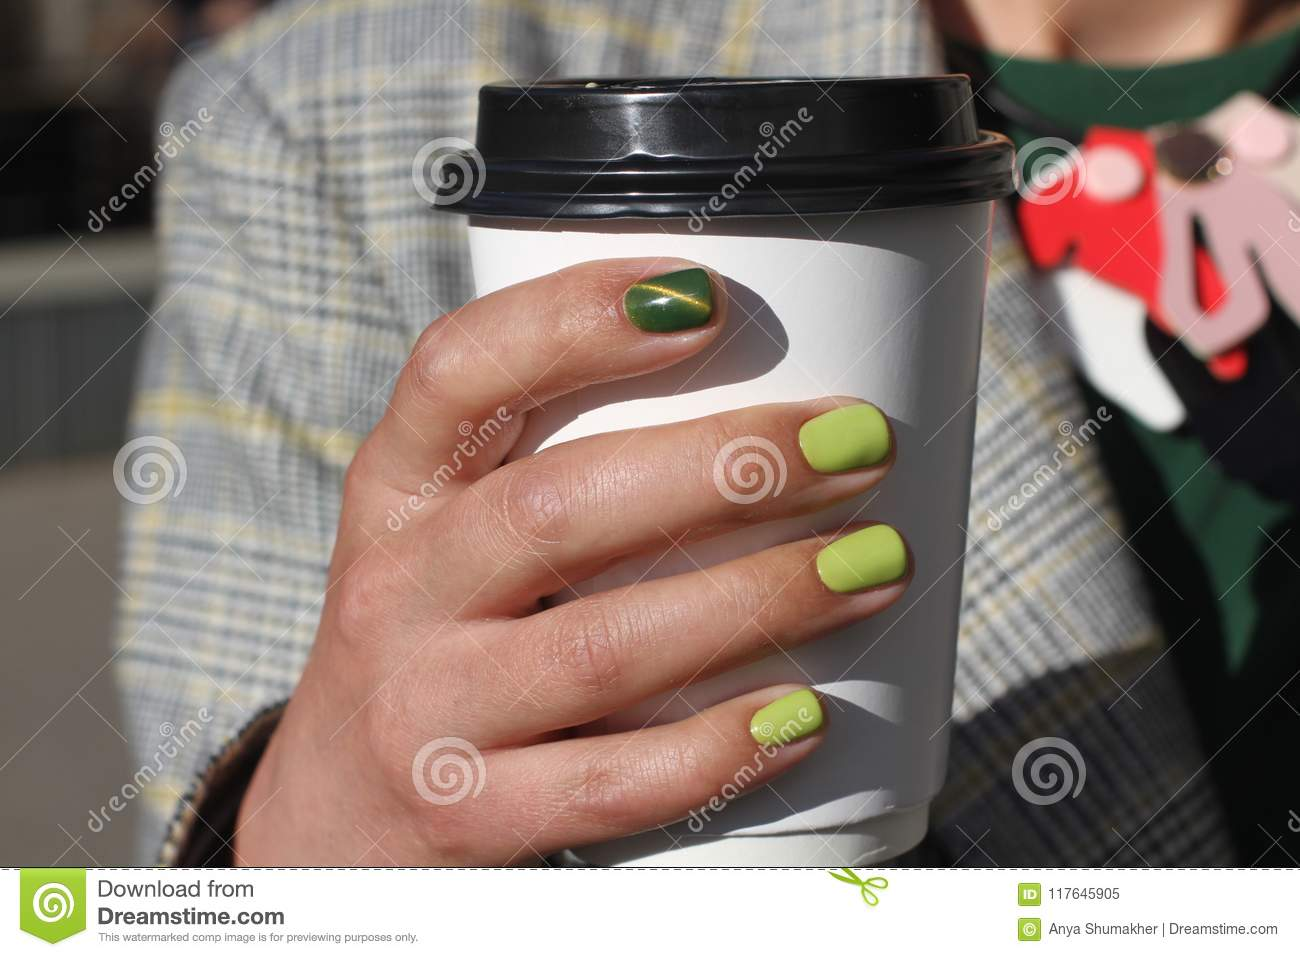 Beautiful Female Hand With Manicure Holds Cardboard Coffee Cup